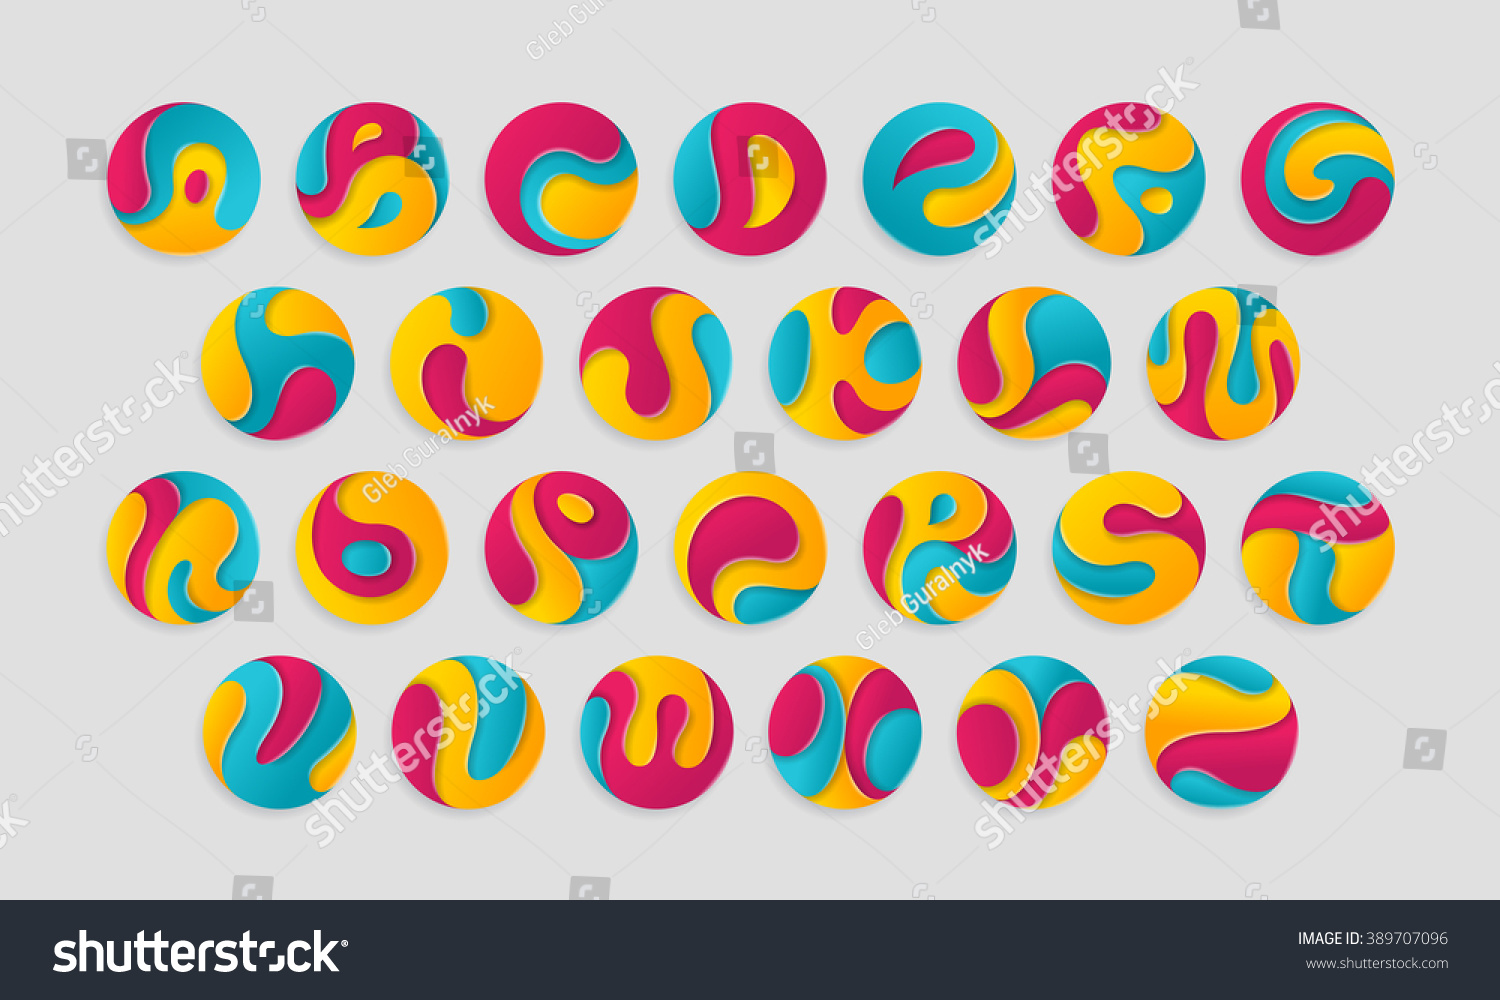 letters colorful logotypes in round shape stylish alphabet circle signs font on light background